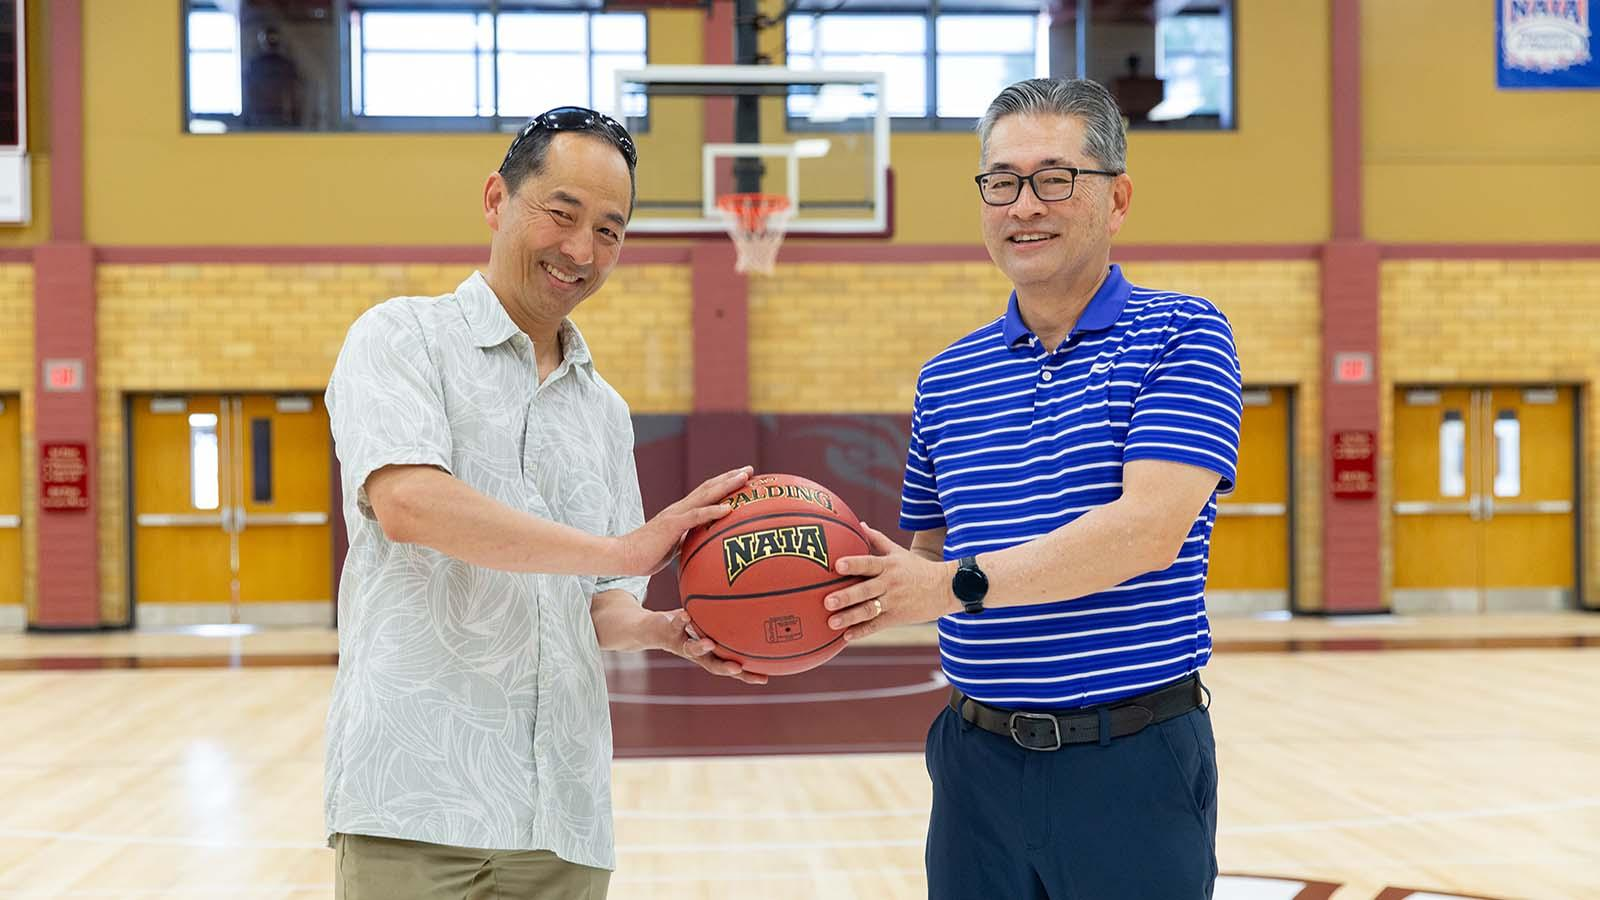 Troy and Jon Kaji were able to visit Allee Gymnasium and shoot a few hoops in the gym where their dad once played.